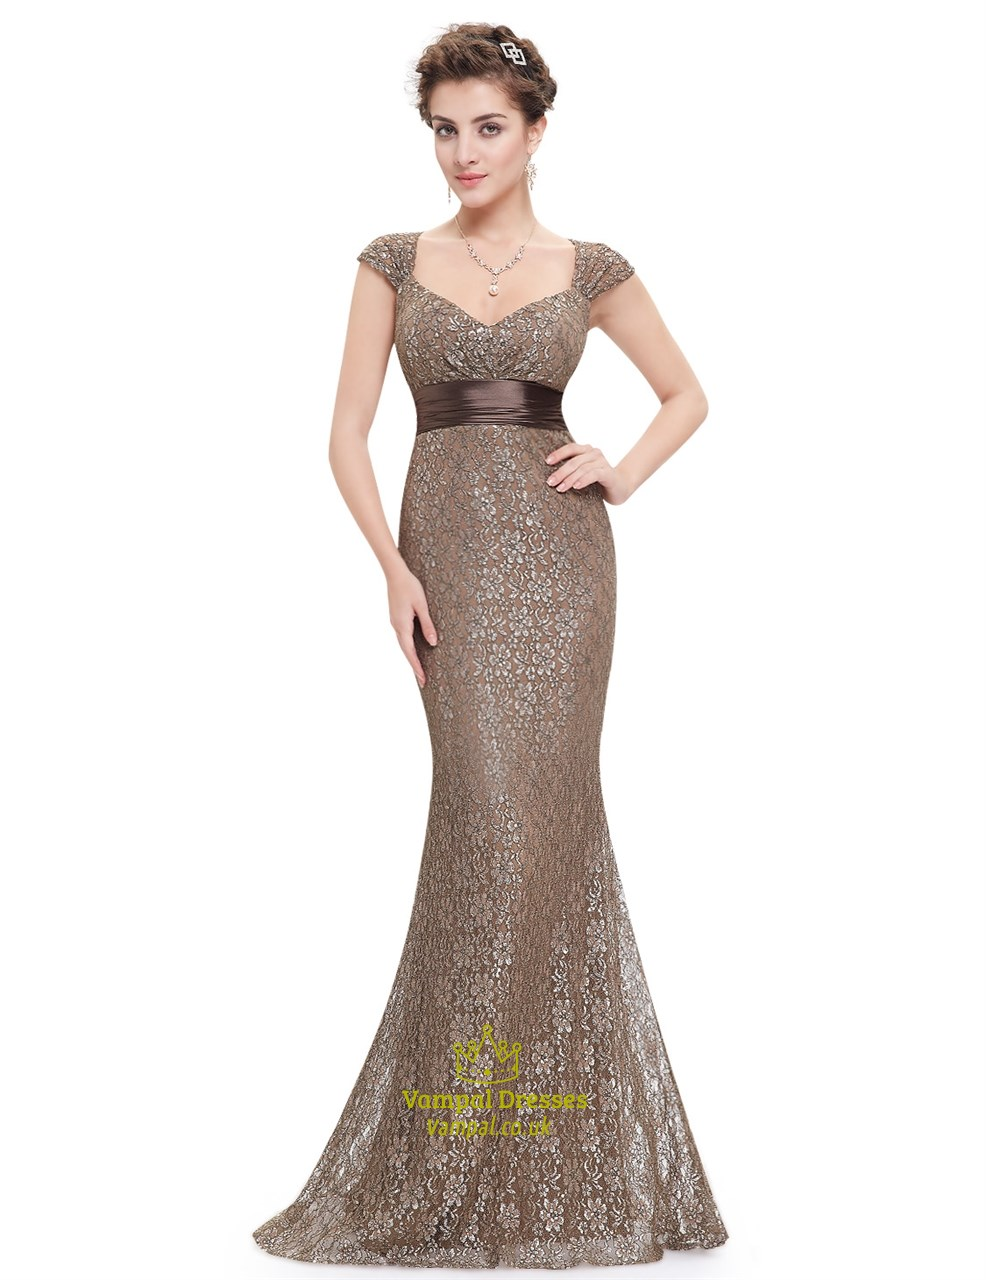 986bfa13f903 Cap Sleeve Sweetheart Neckline Empire Waist Lace Mermaid Prom Dress SKU  -AP102